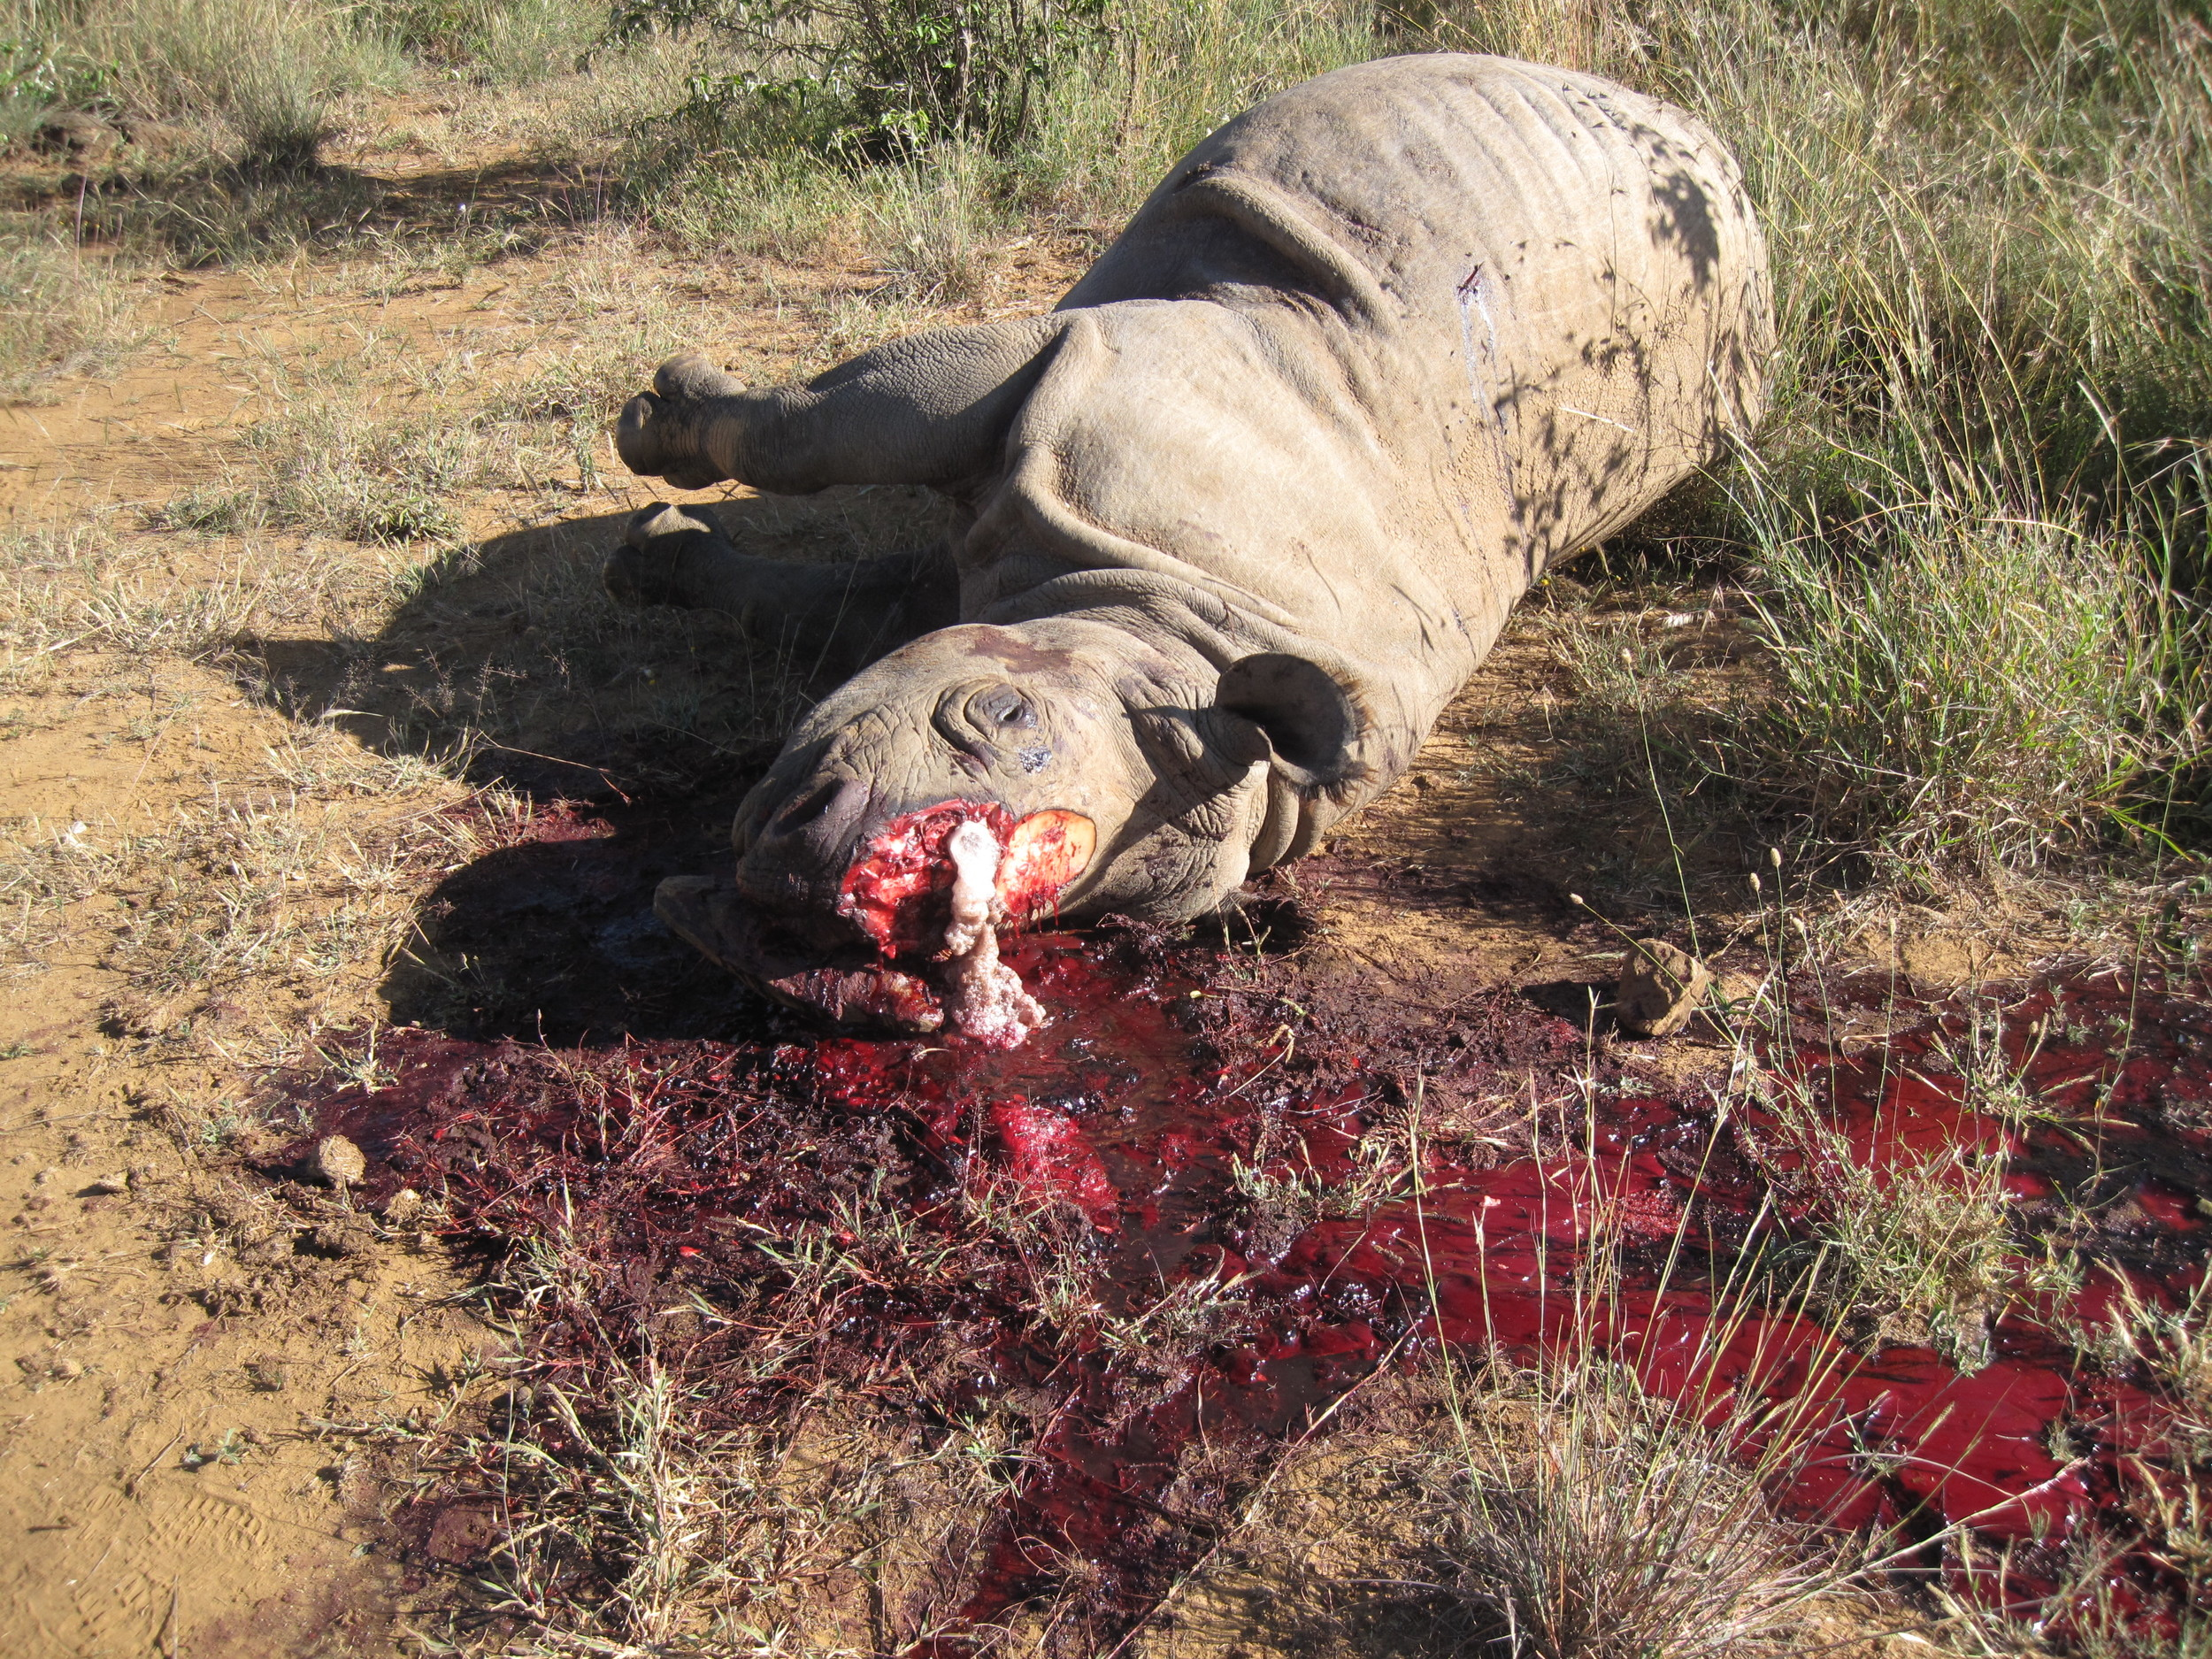 Another casualty of wildlife terrorism, an African white rhino, in Kenya on 10/11/2011. Image courtesy of Claus Mortenson.